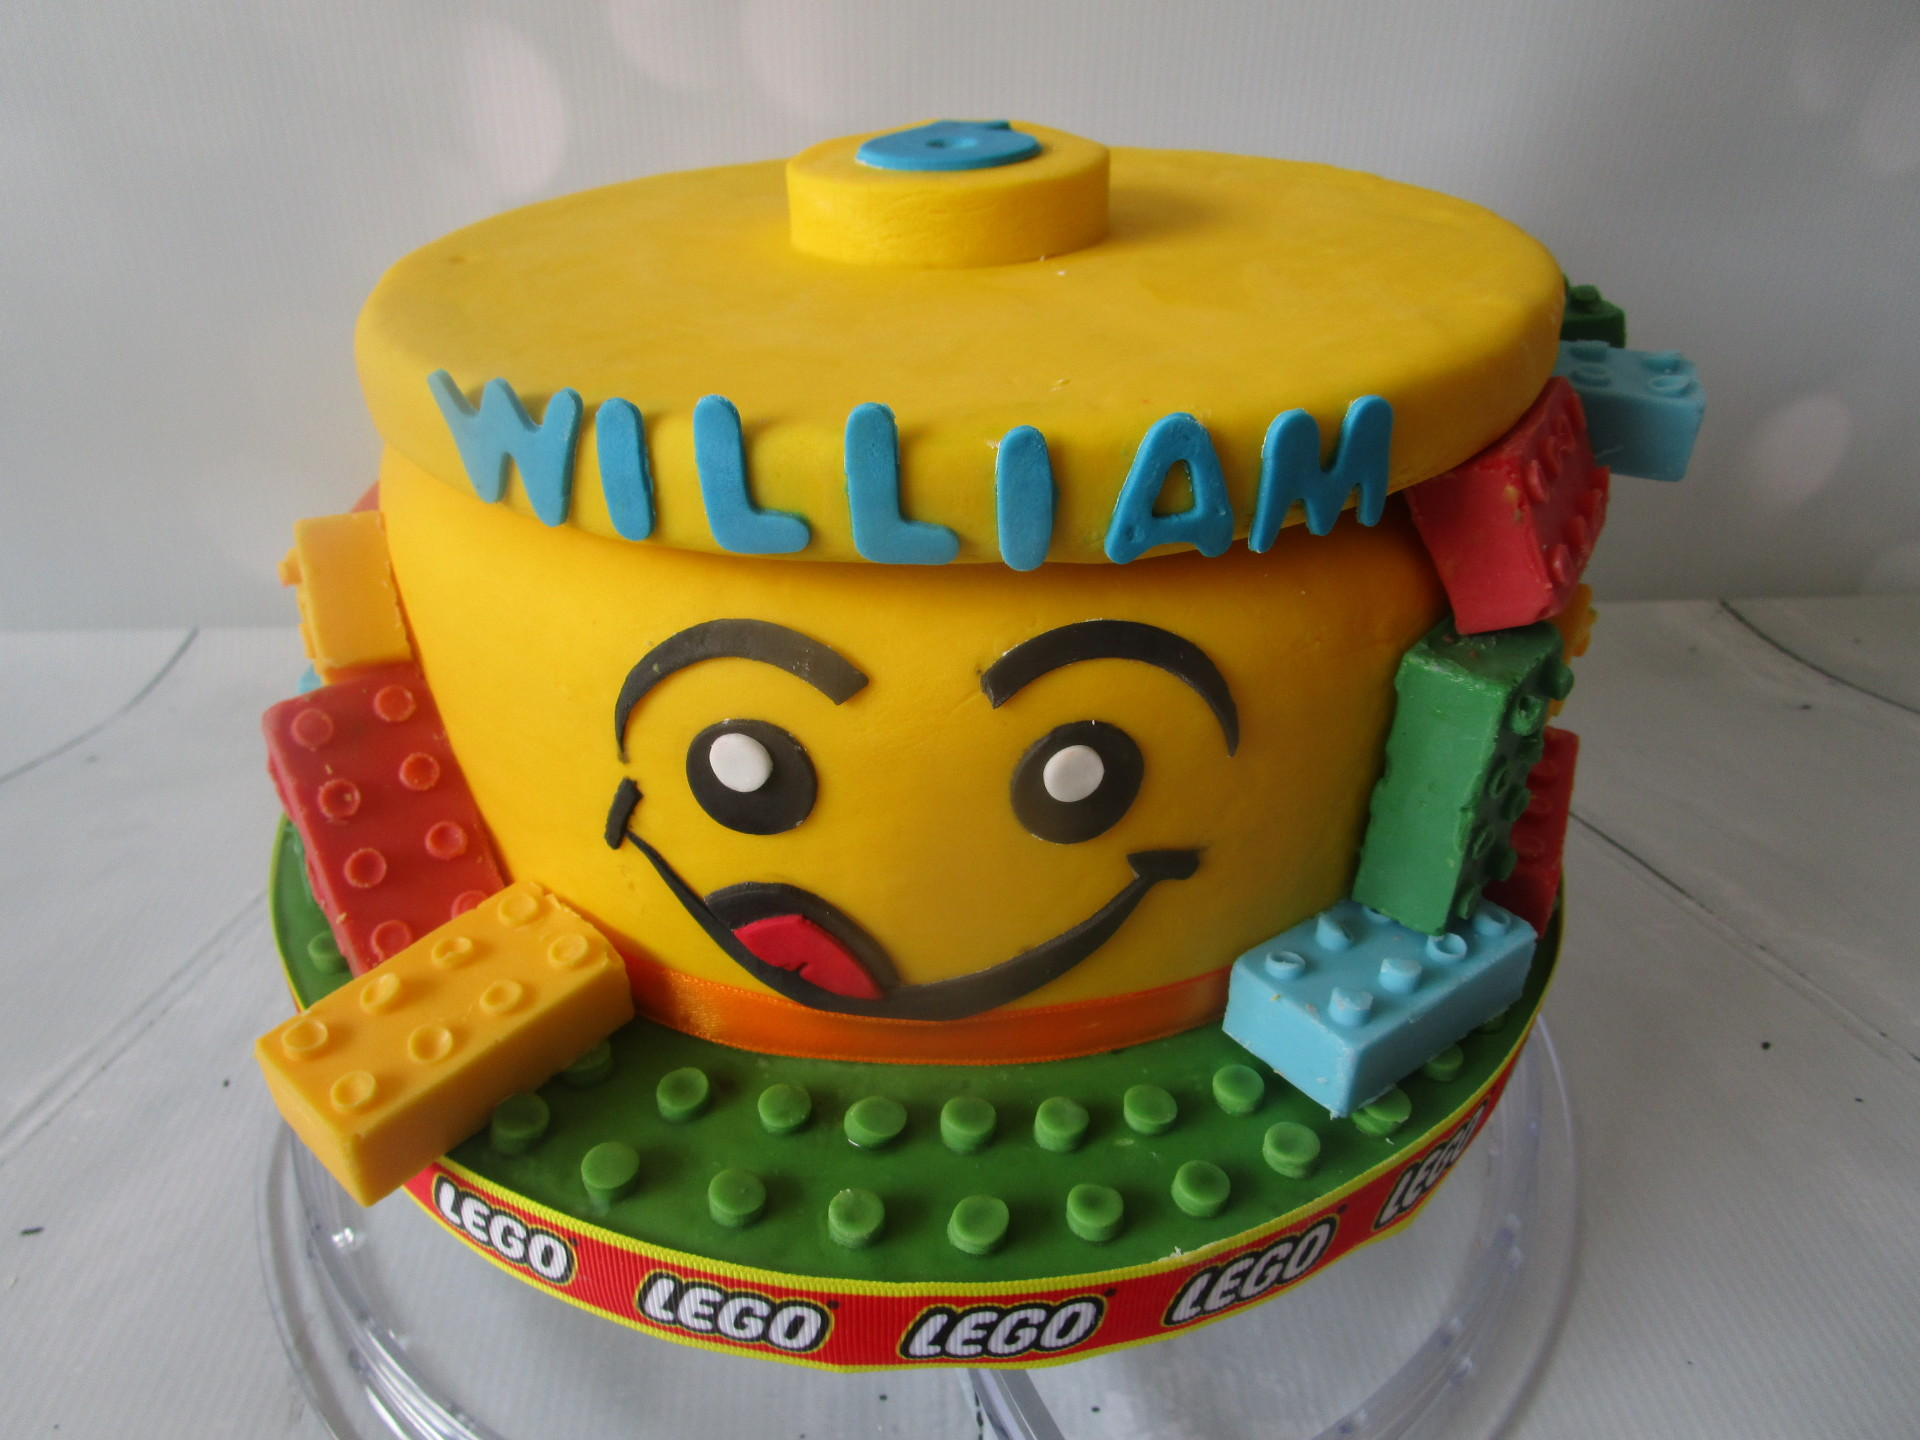 Lego Birthday Cake with Handcrafted Candy Bricks